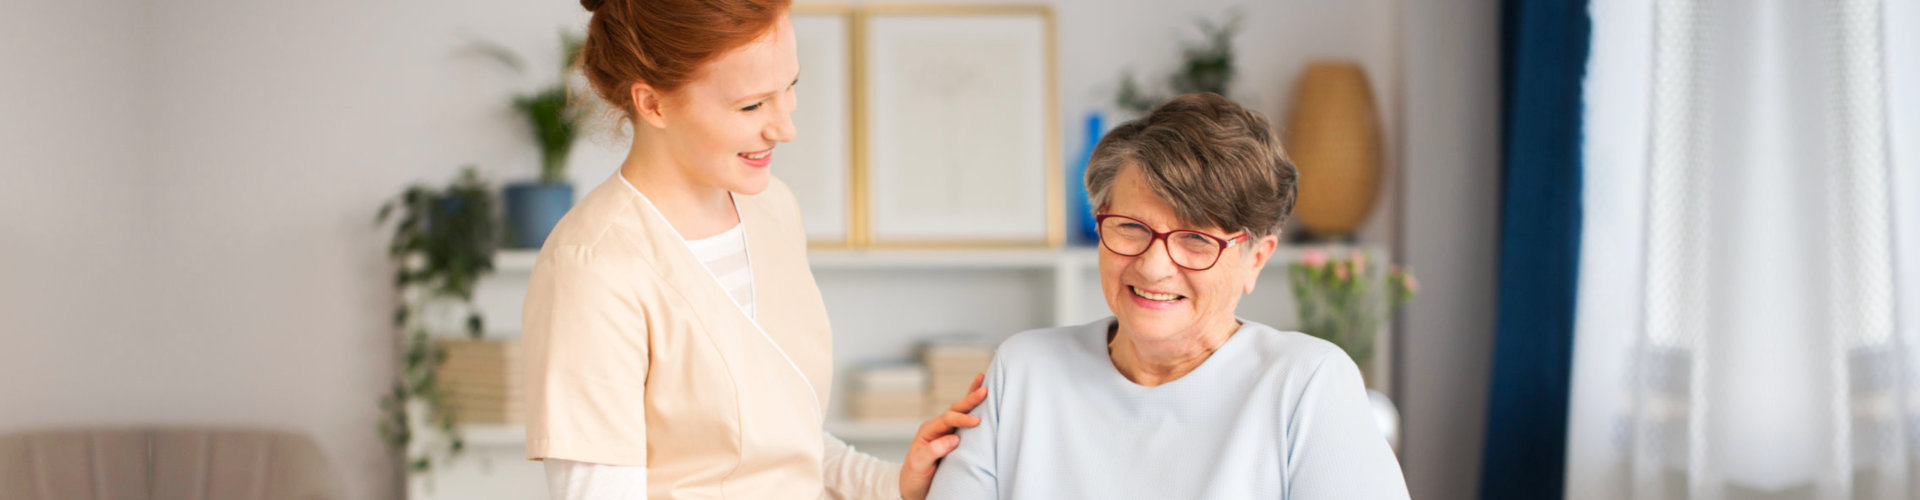 caregiver smiling with the elder lady